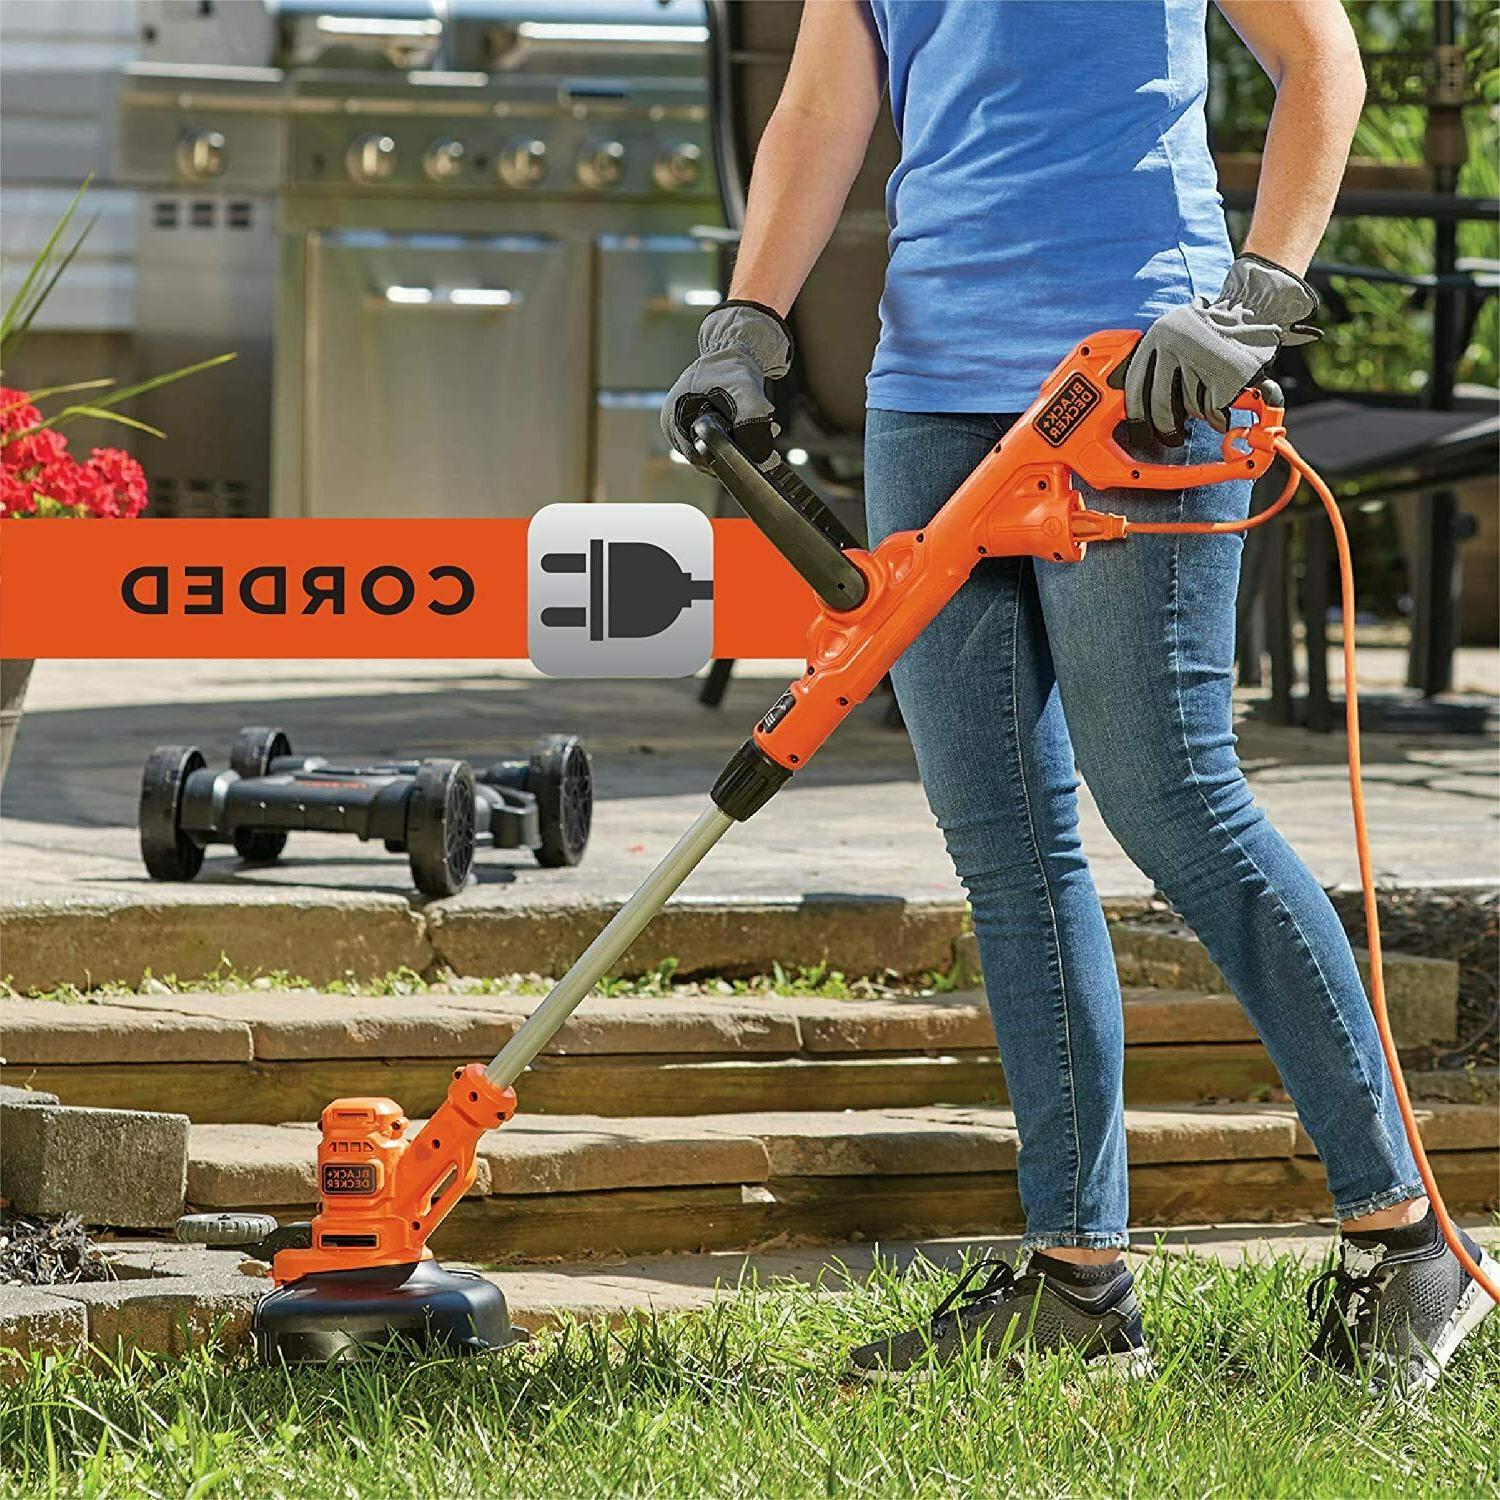 Black & Decker 12 in. 3-in-1 Compact Electric Lawn Mower BES